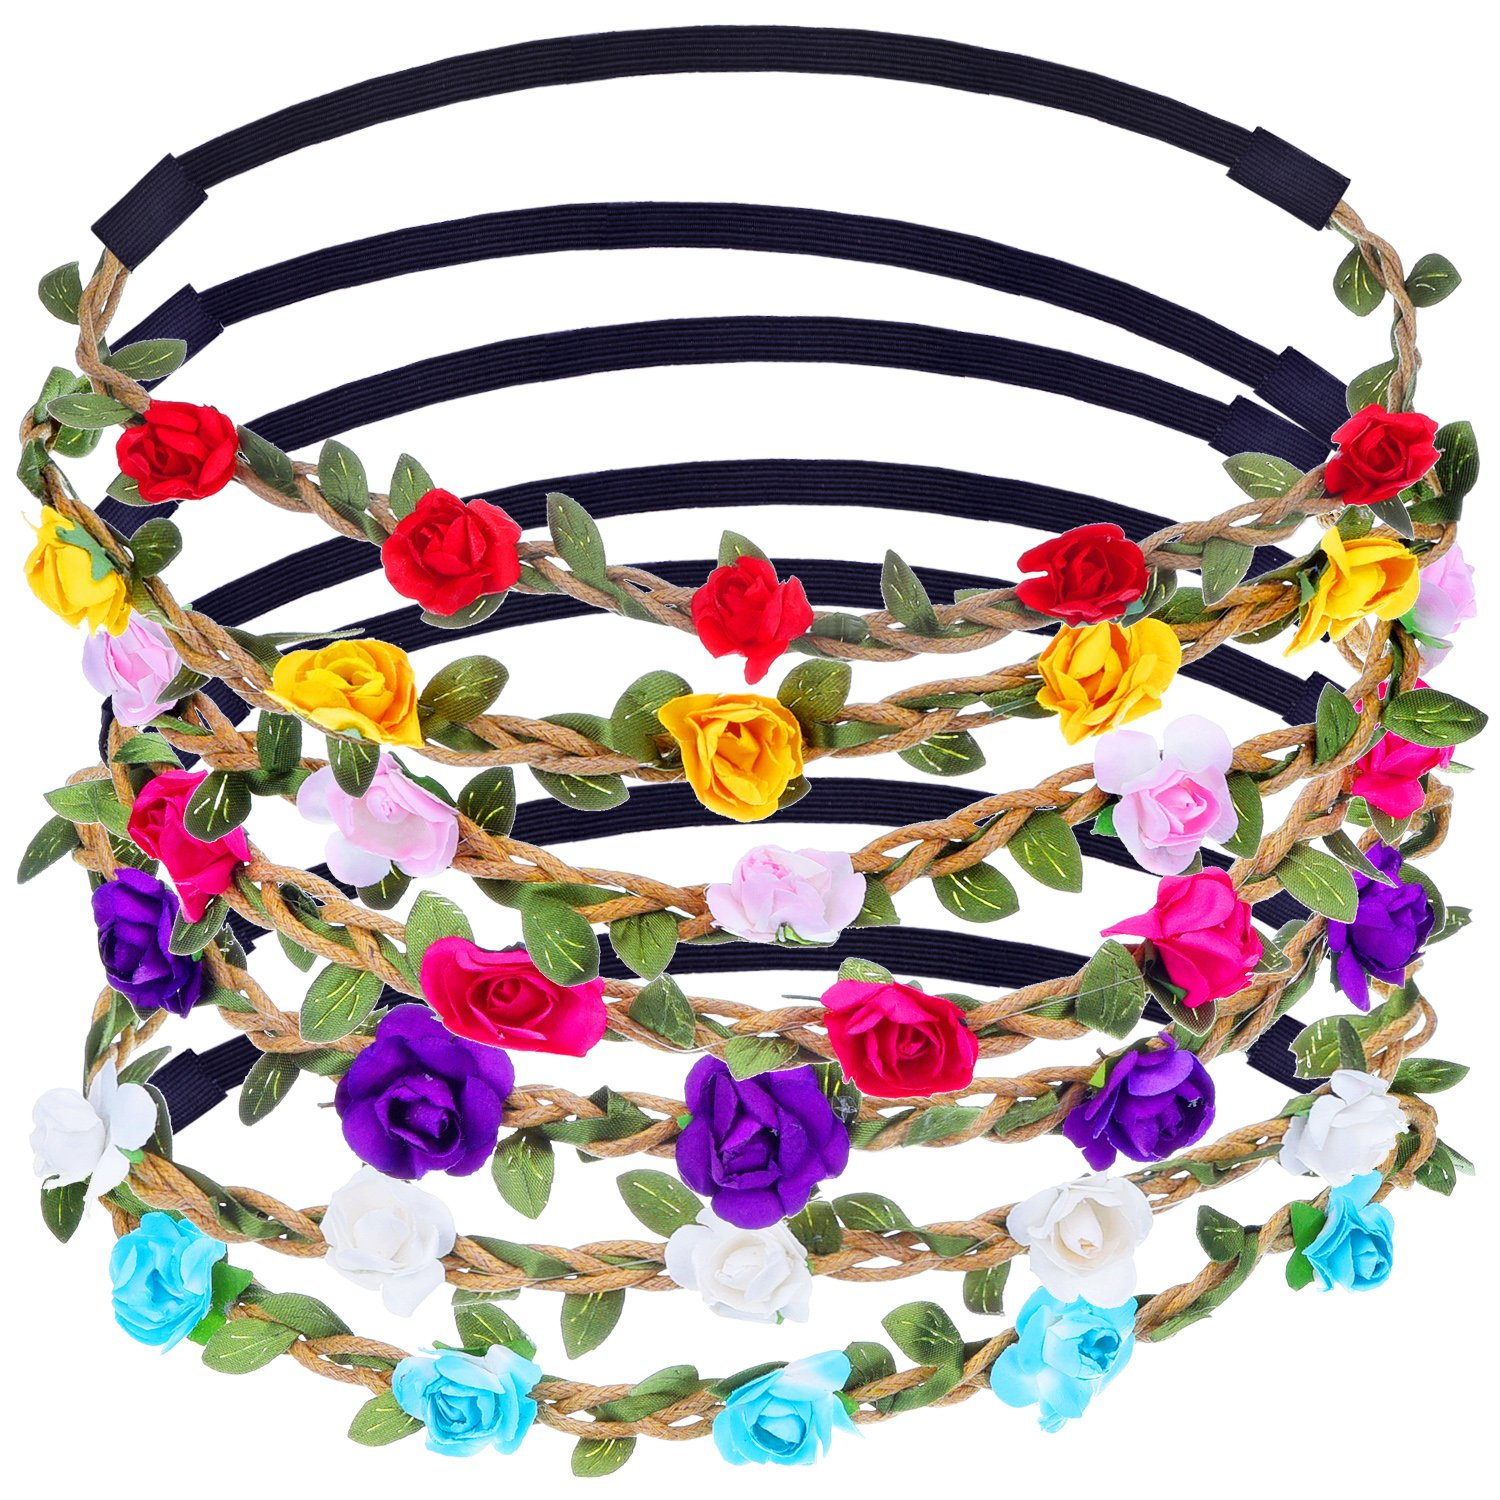 7 Pieces Rose Flower Headband Hair Band for Women Girls Hair Accessories (Multicolor B) eBoot